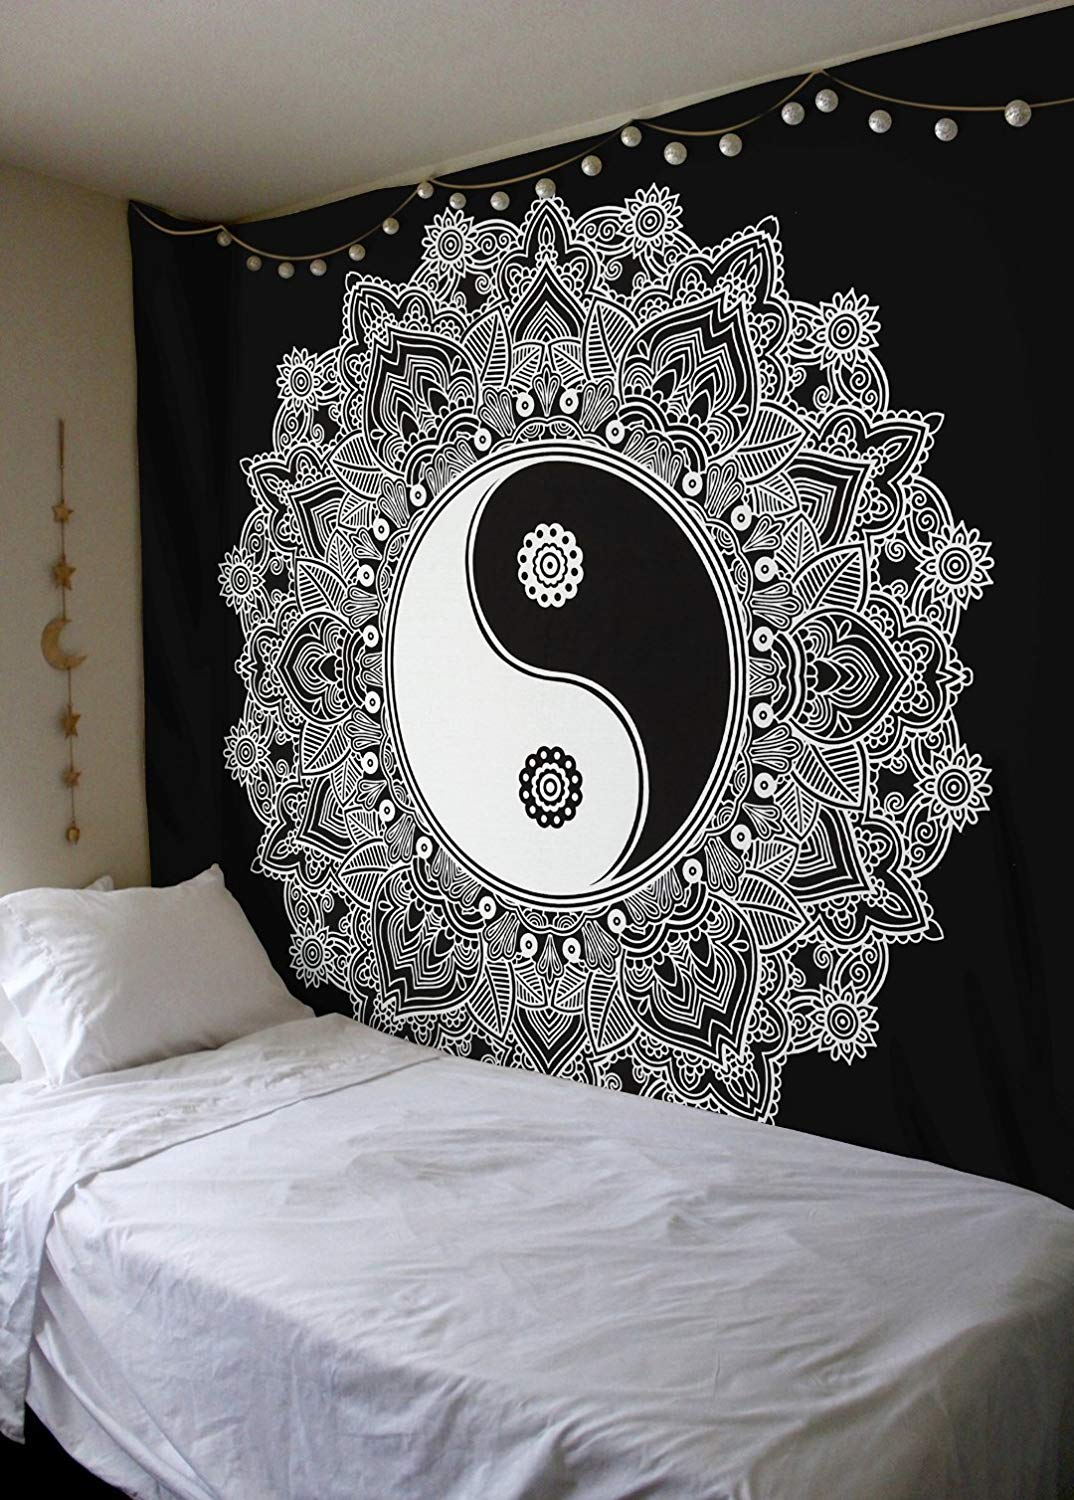 Heyrumbh Handicrafts Yin & Yang Tapestry Wall Hanging Tapestry(Black and White, 84 X 90 Inches)